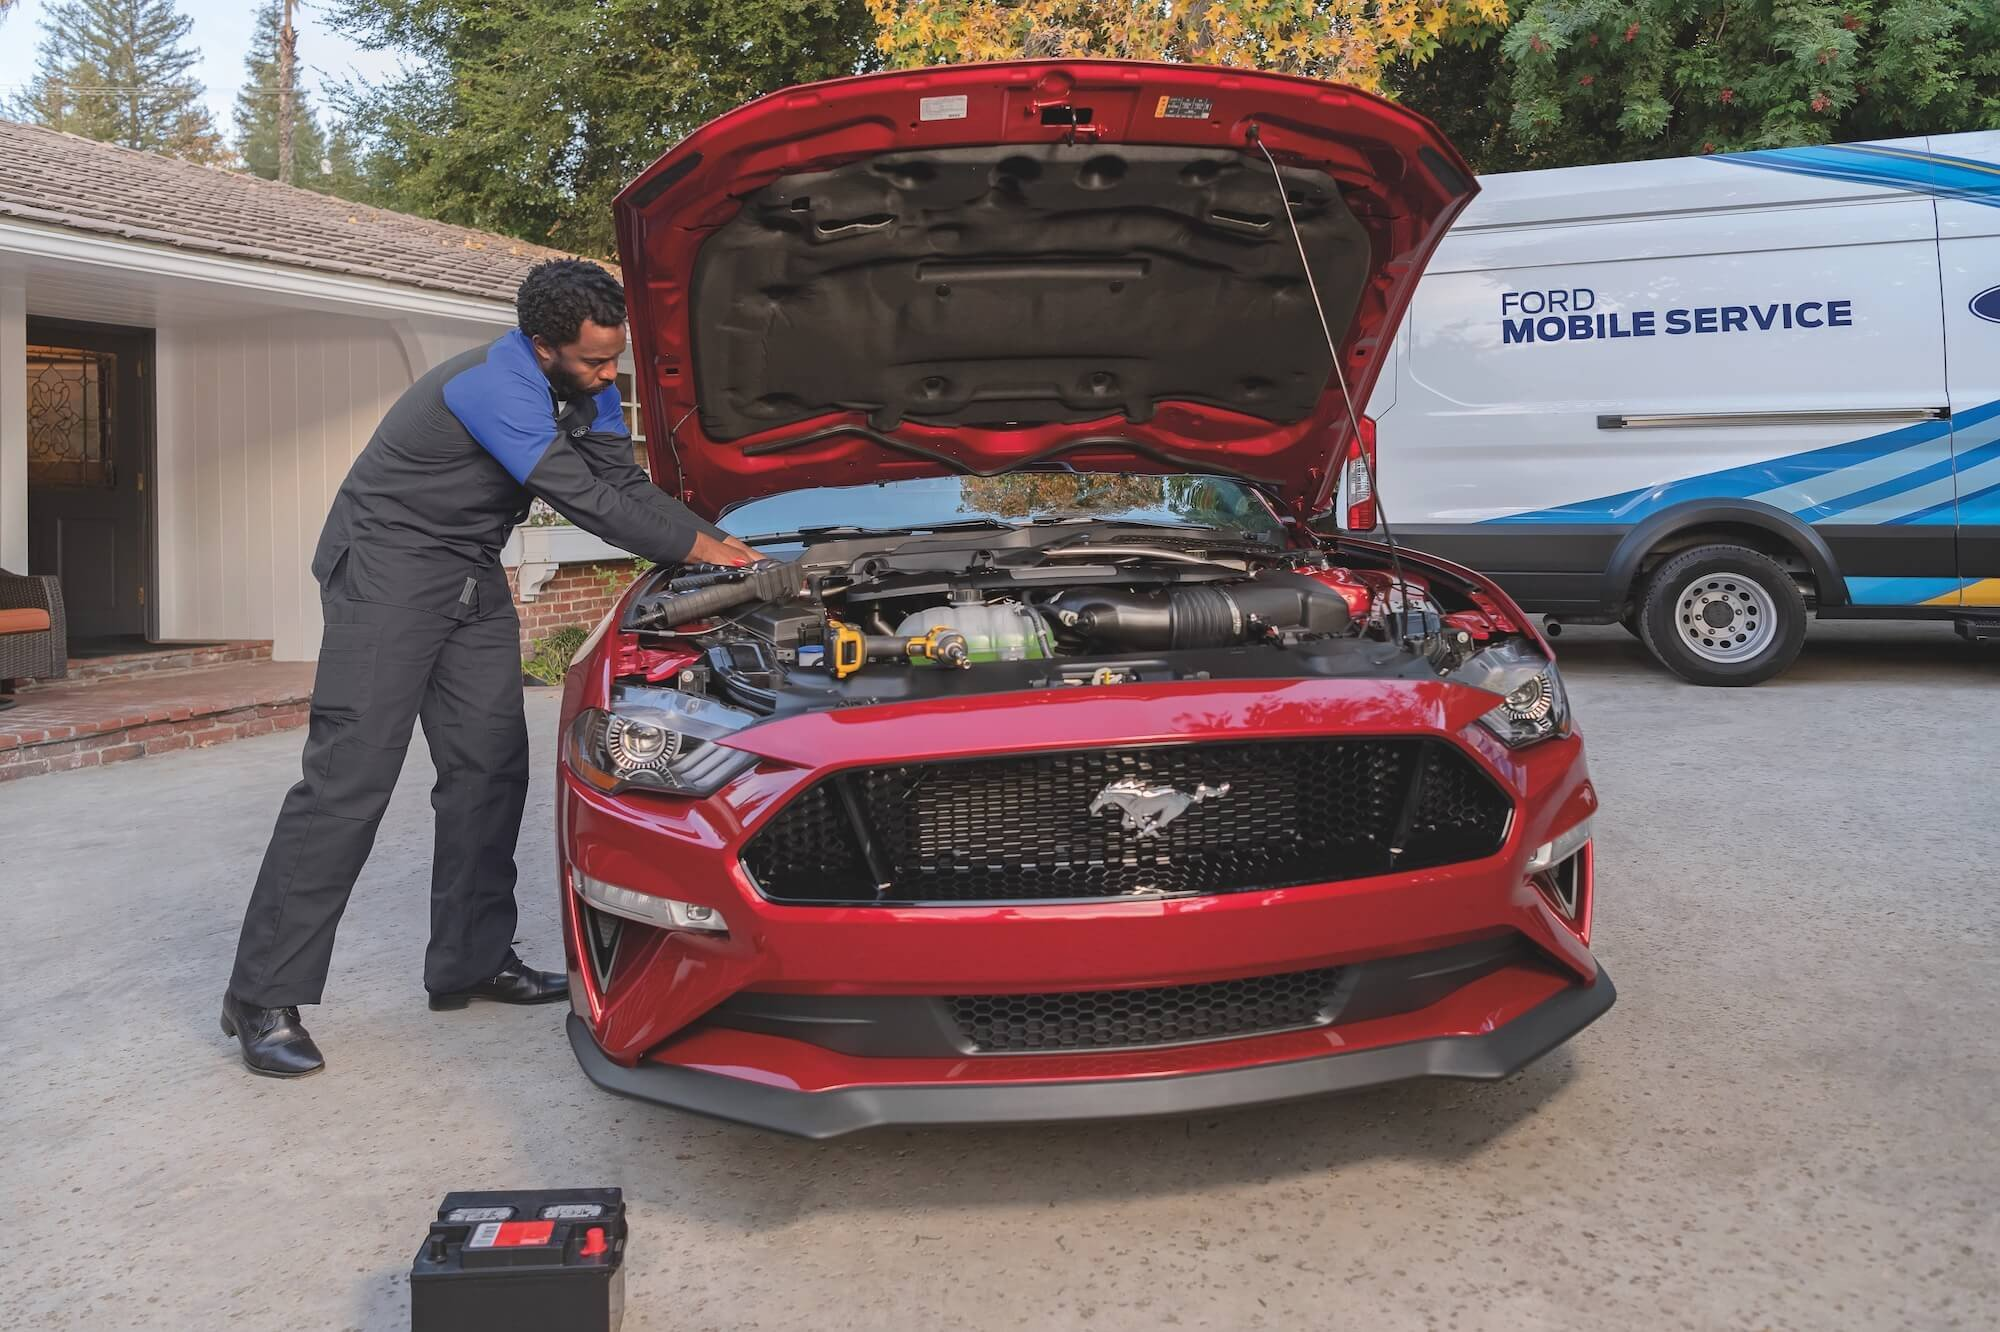 Ford Mobile Service Technician Under The Hood - Mullinax Ford of Central Florida